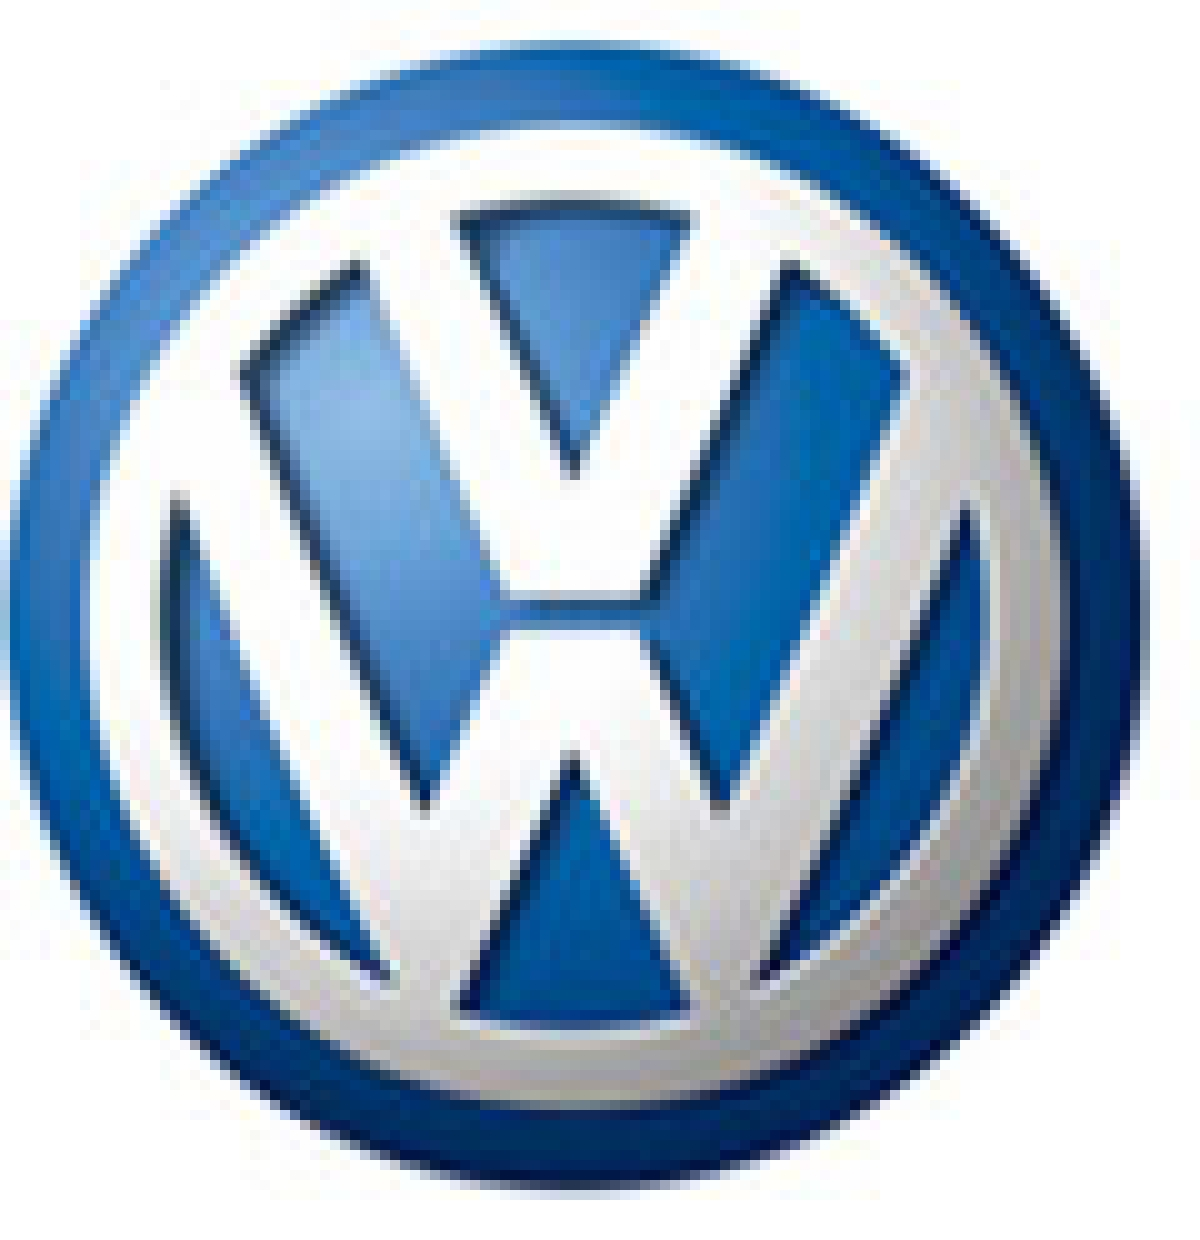 Volkswagen brand grows deliveries in July by 15.2 percent